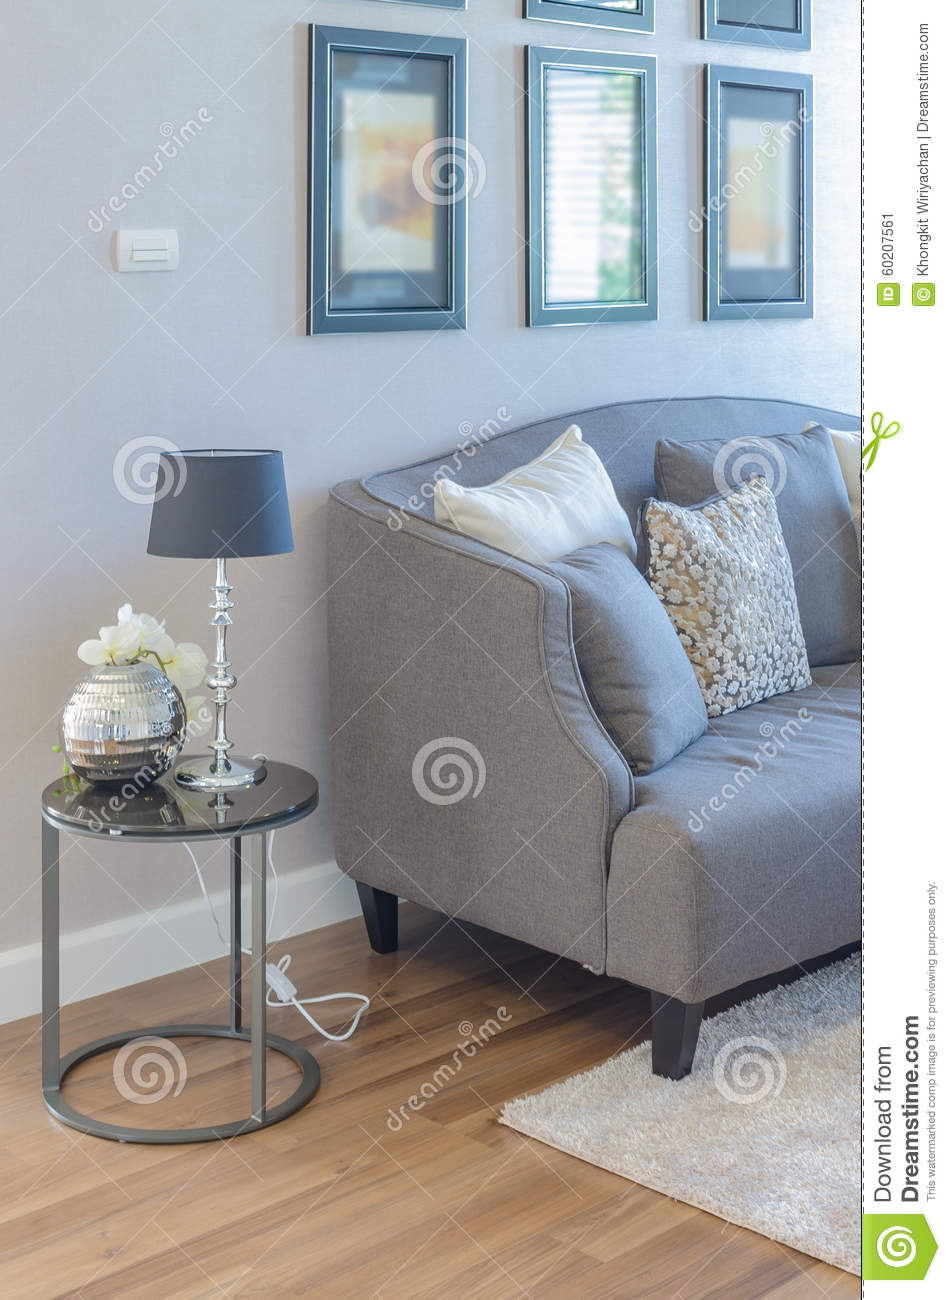 Black Classic Lamp Style On Round Side Table Stock Image - Image of ...